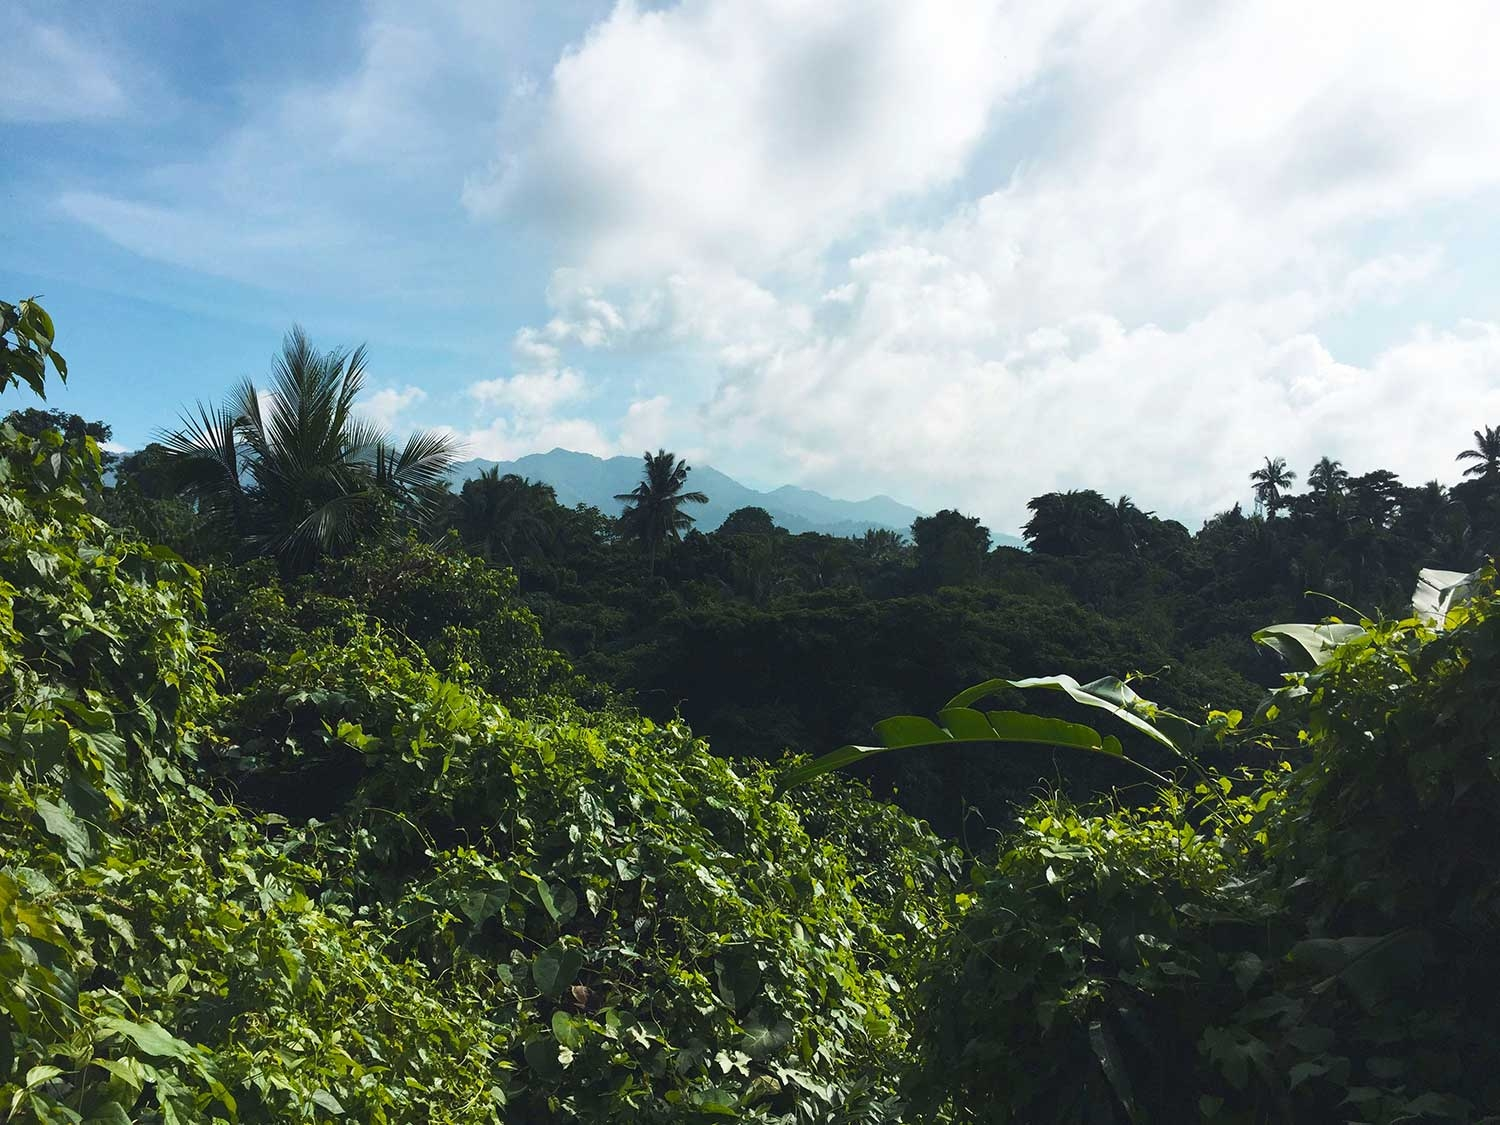 Looking out over the treetops at Mount Malarayat